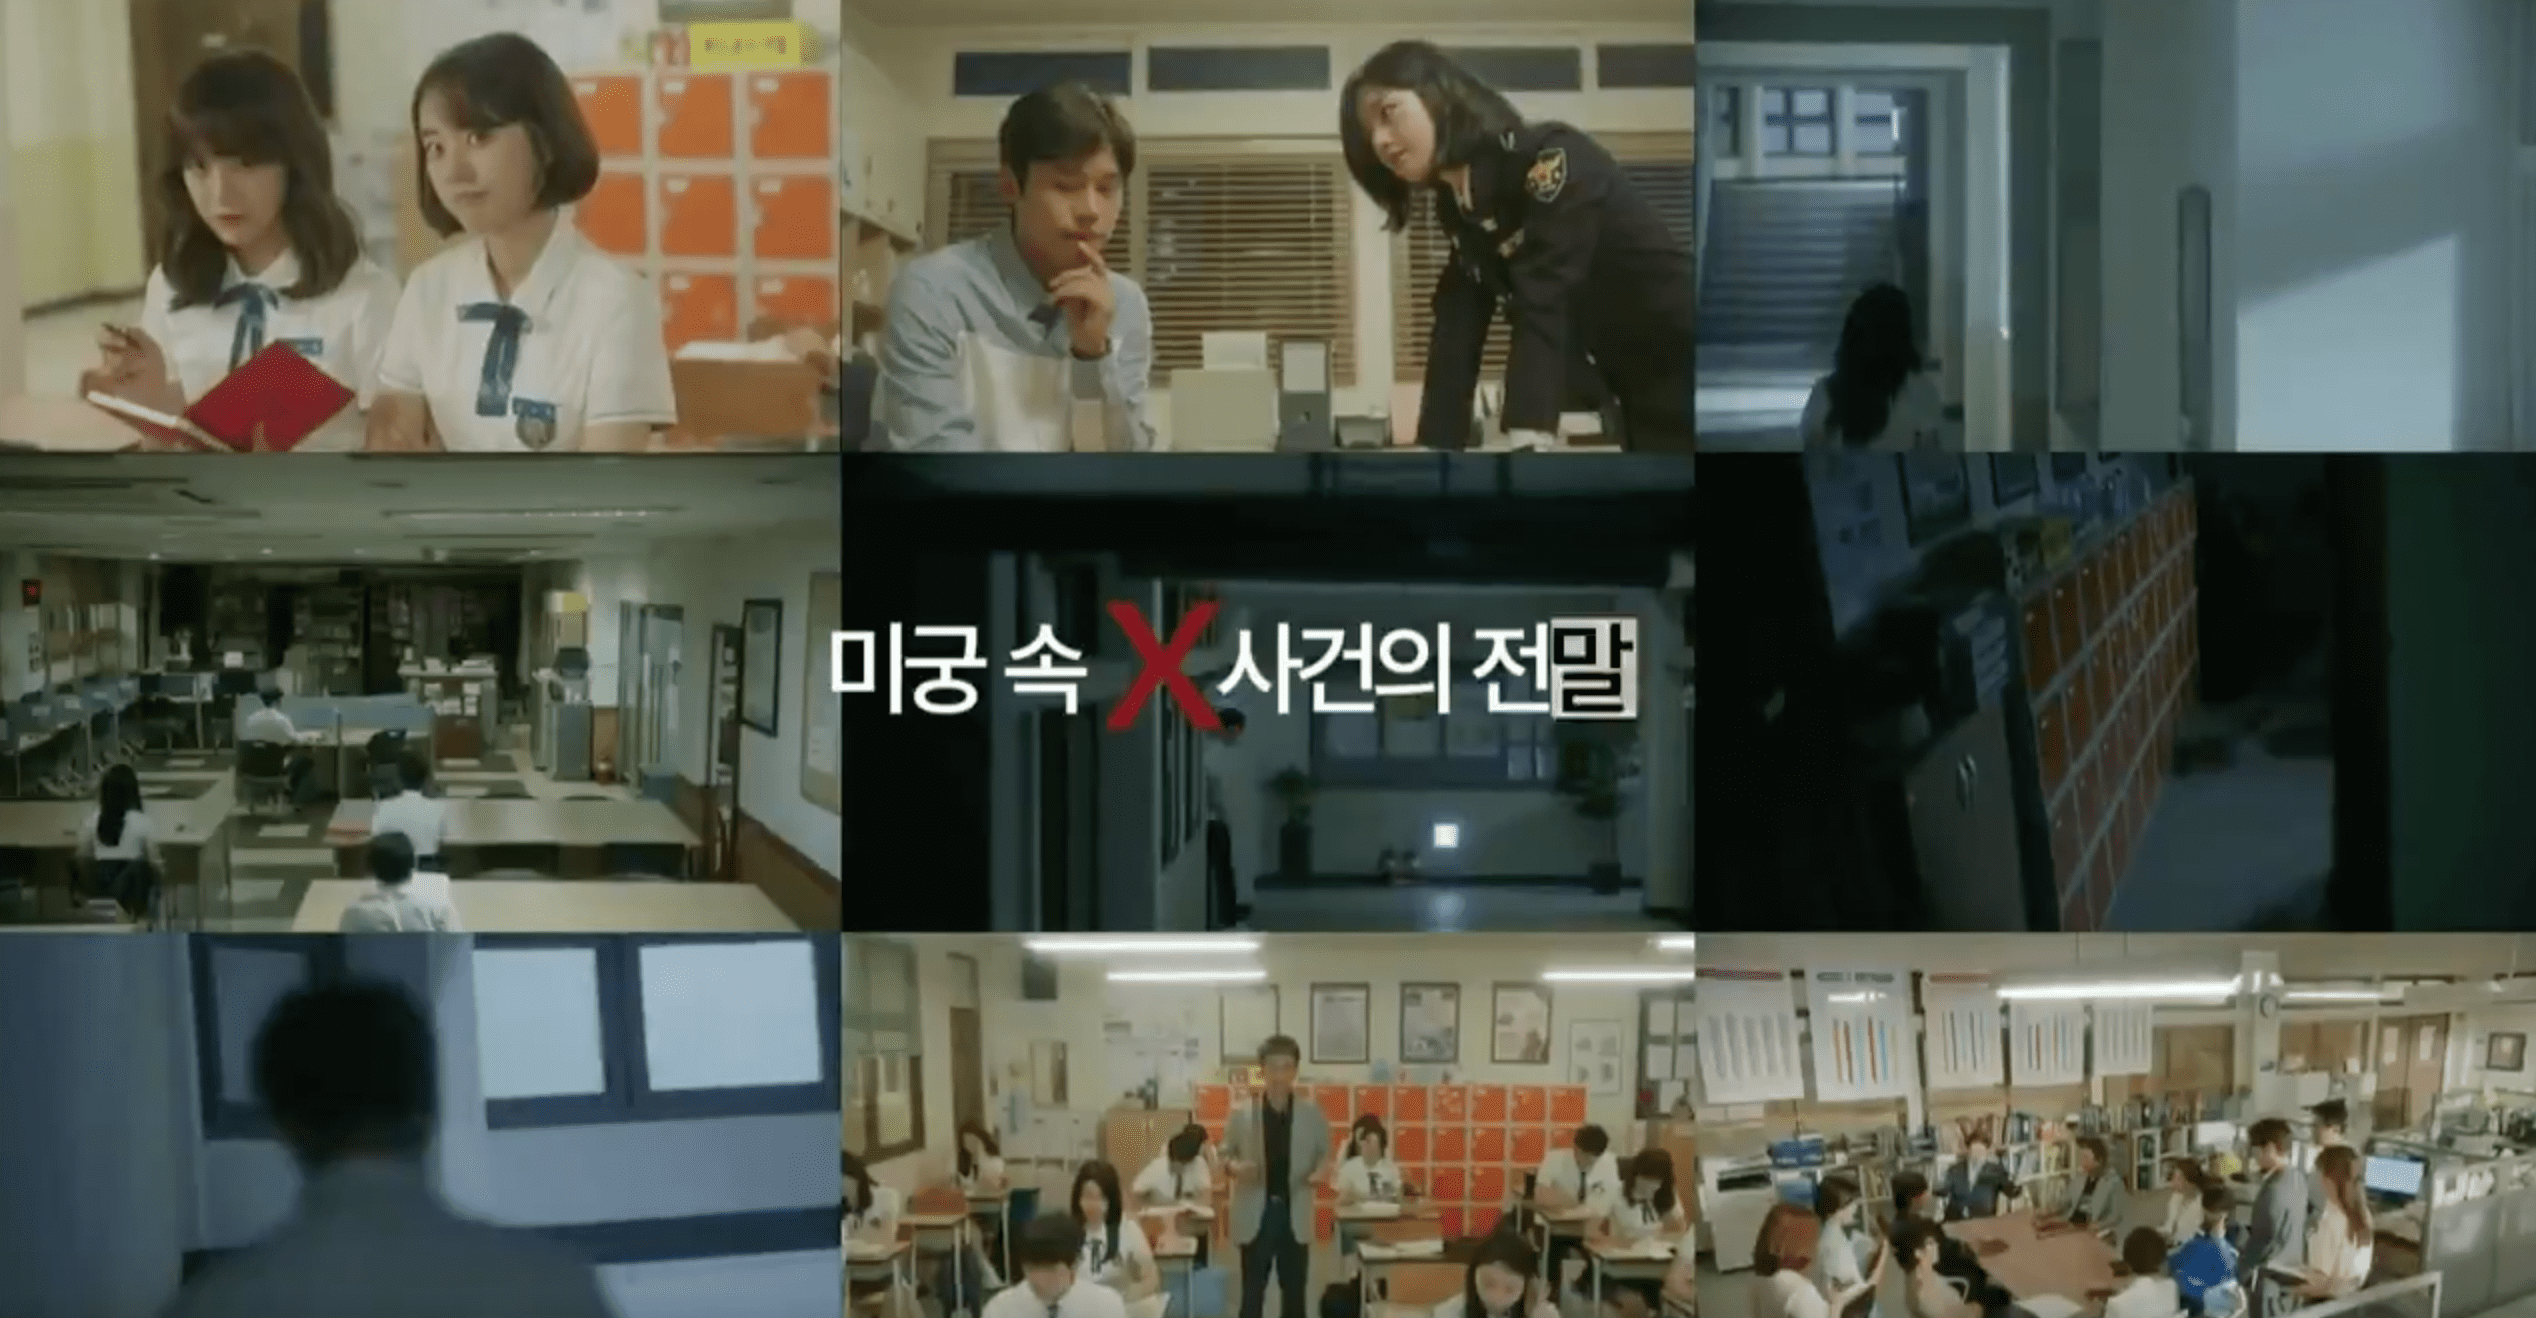 Watch: School 2017 Hints At Crime Thriller Plotline In Intense New Teaser